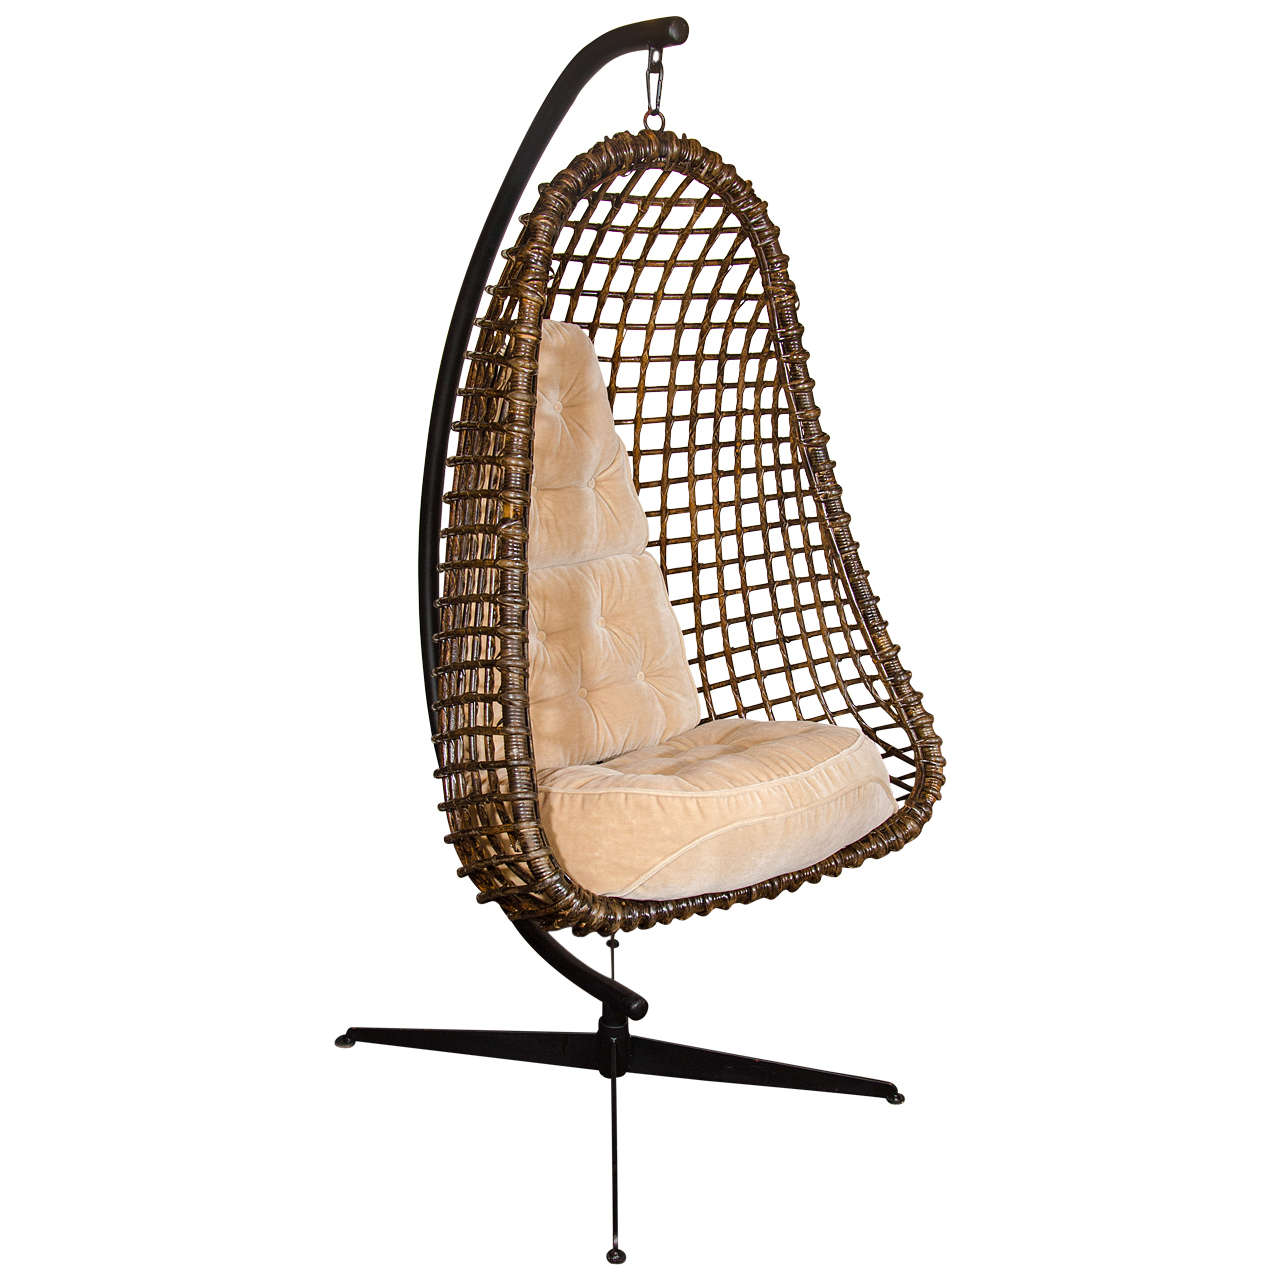 Cocoon Chair Rare Outstanding Mid Century Modern Hanging Cocoon Chair